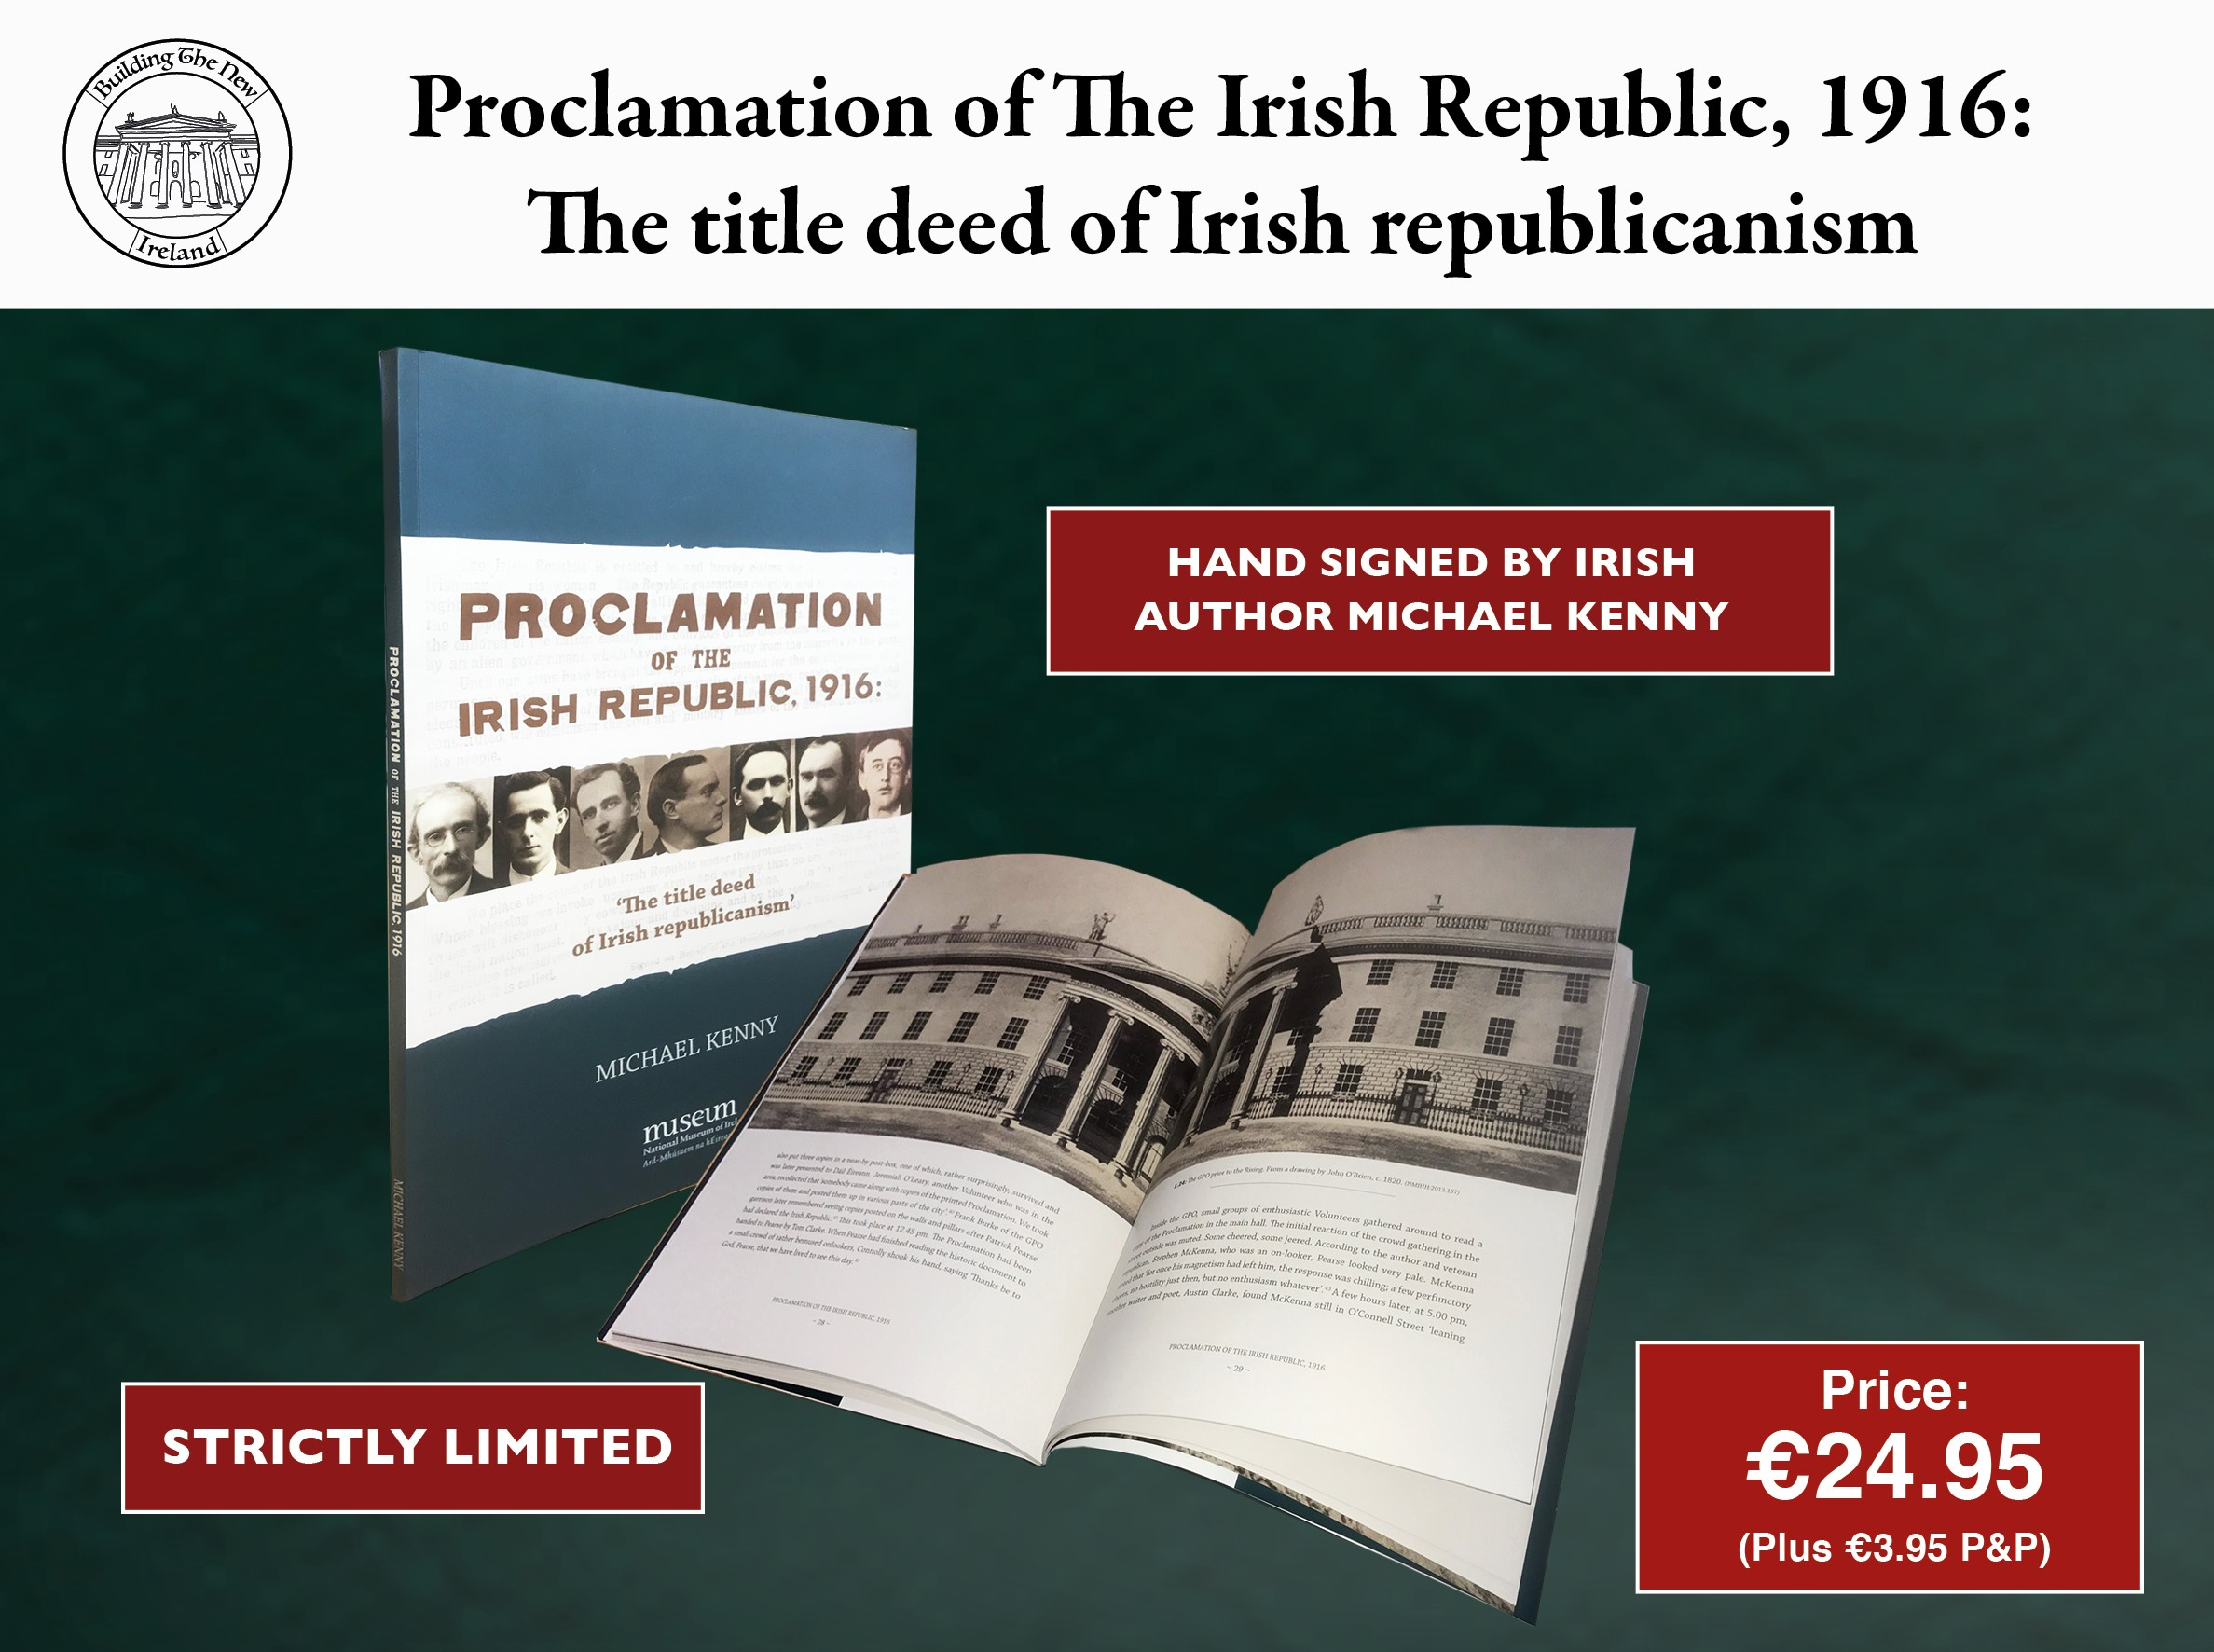 The 1916 Proclamation Book